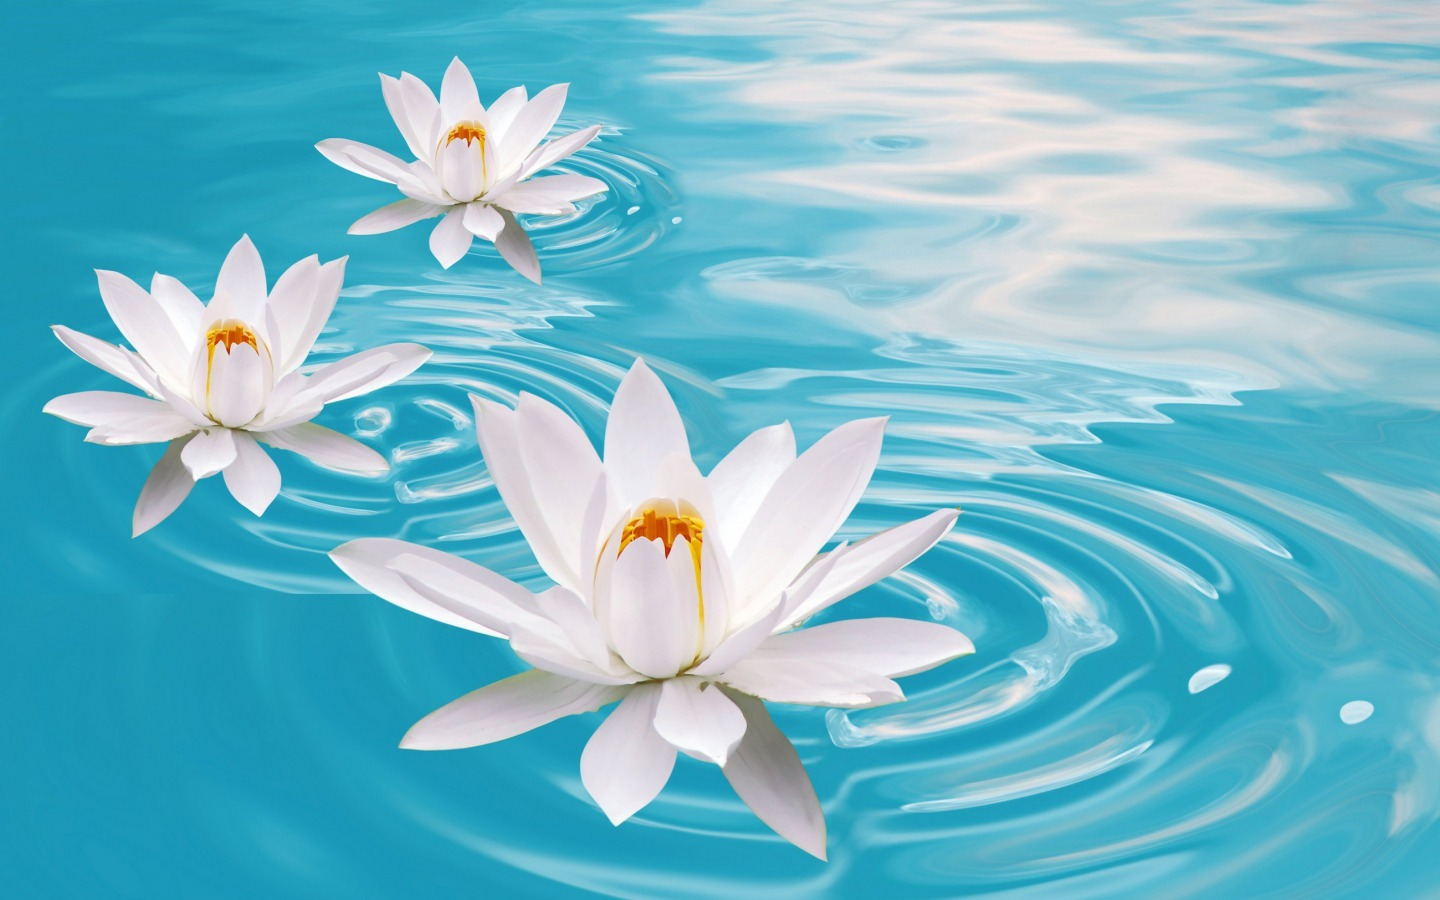 Water Flower Wallpaper